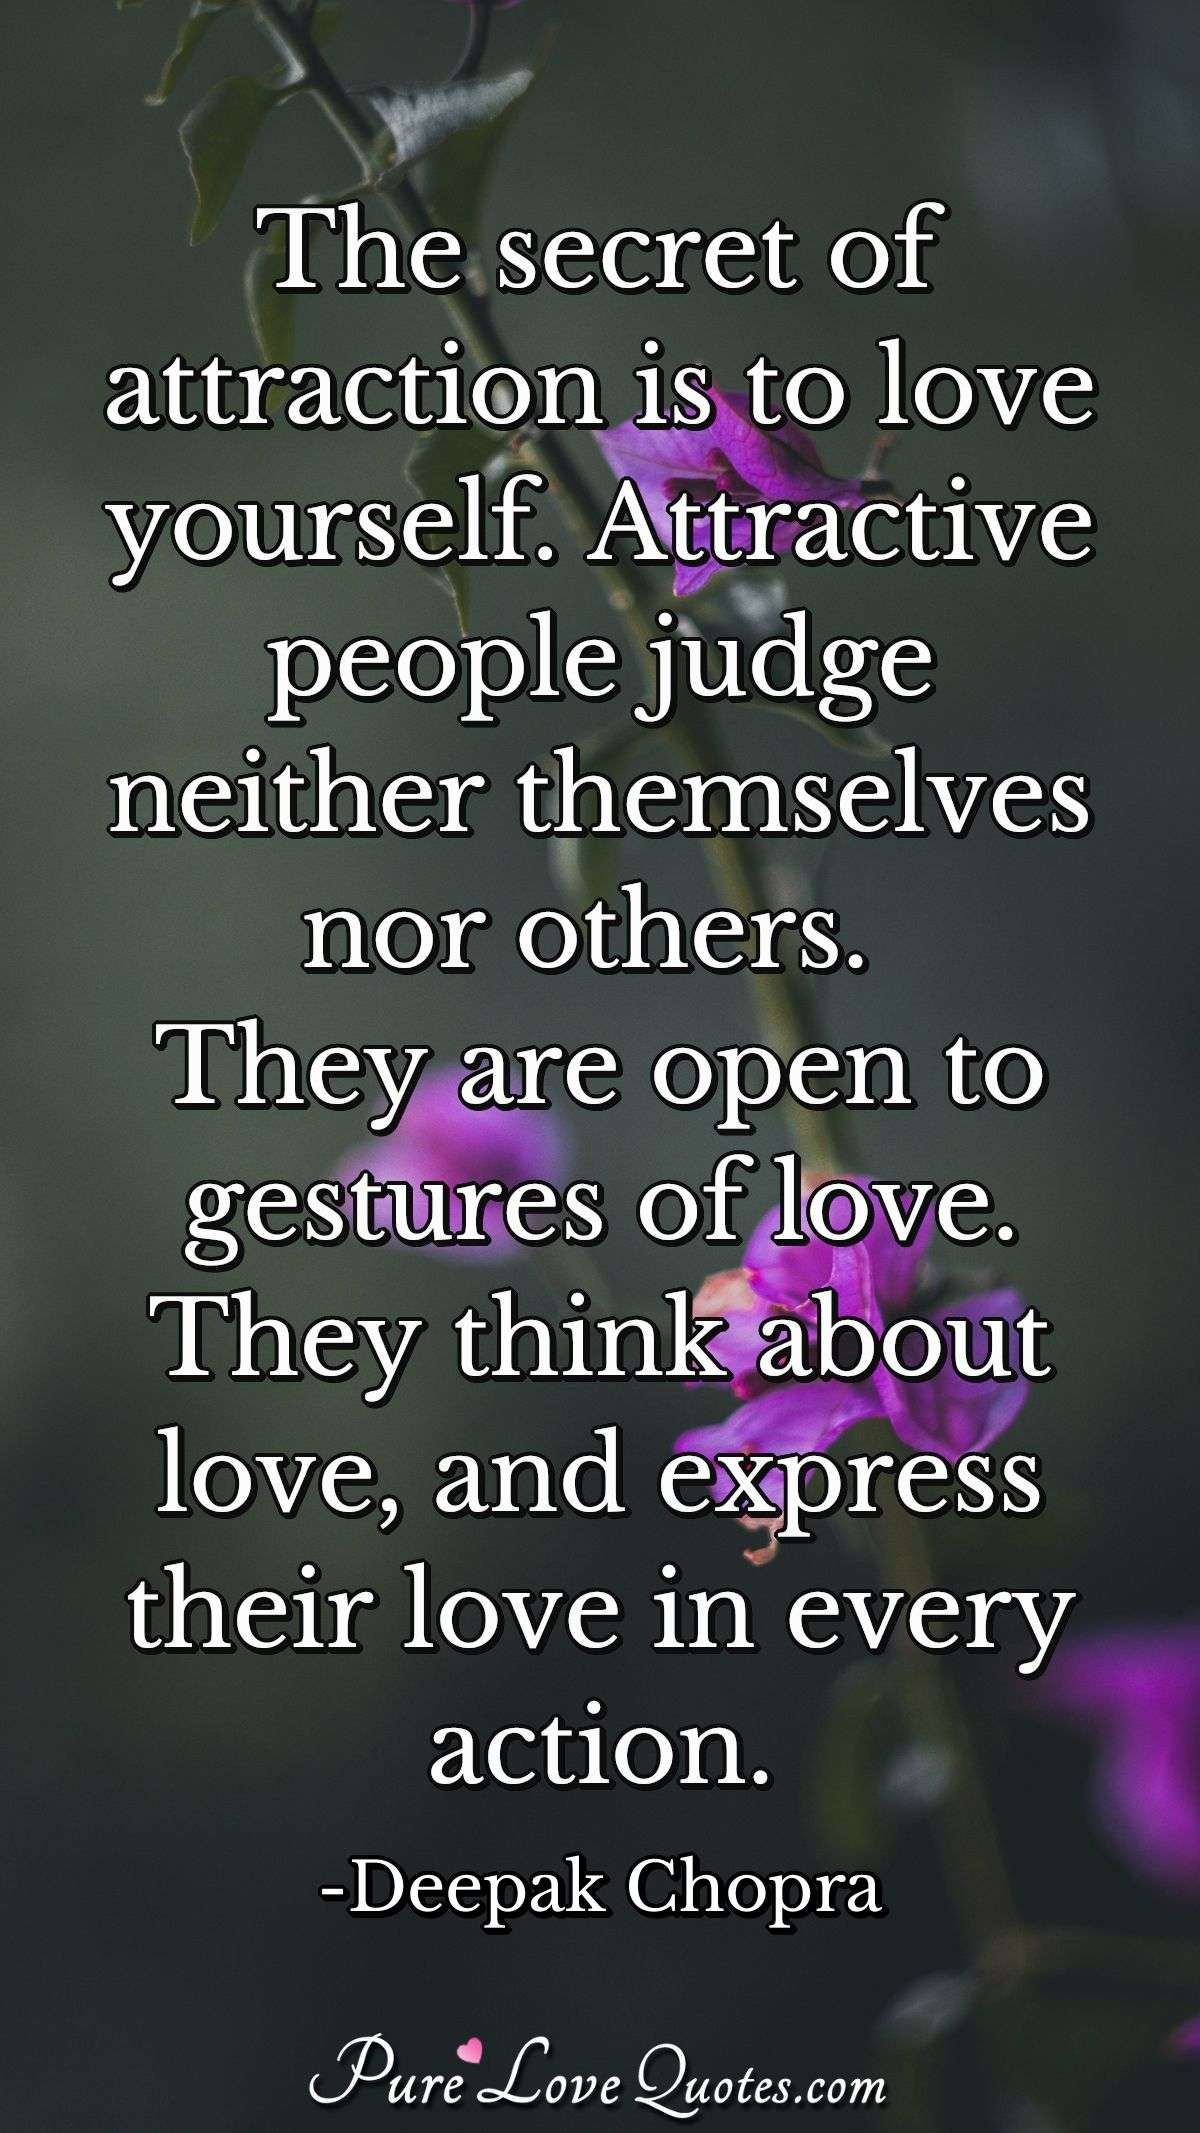 The secret of attraction is to love yourself. Attractive people judge neither themselves nor others. They are open to gestures of love. They think about love, and express their love in every action. - Deepak Chopra